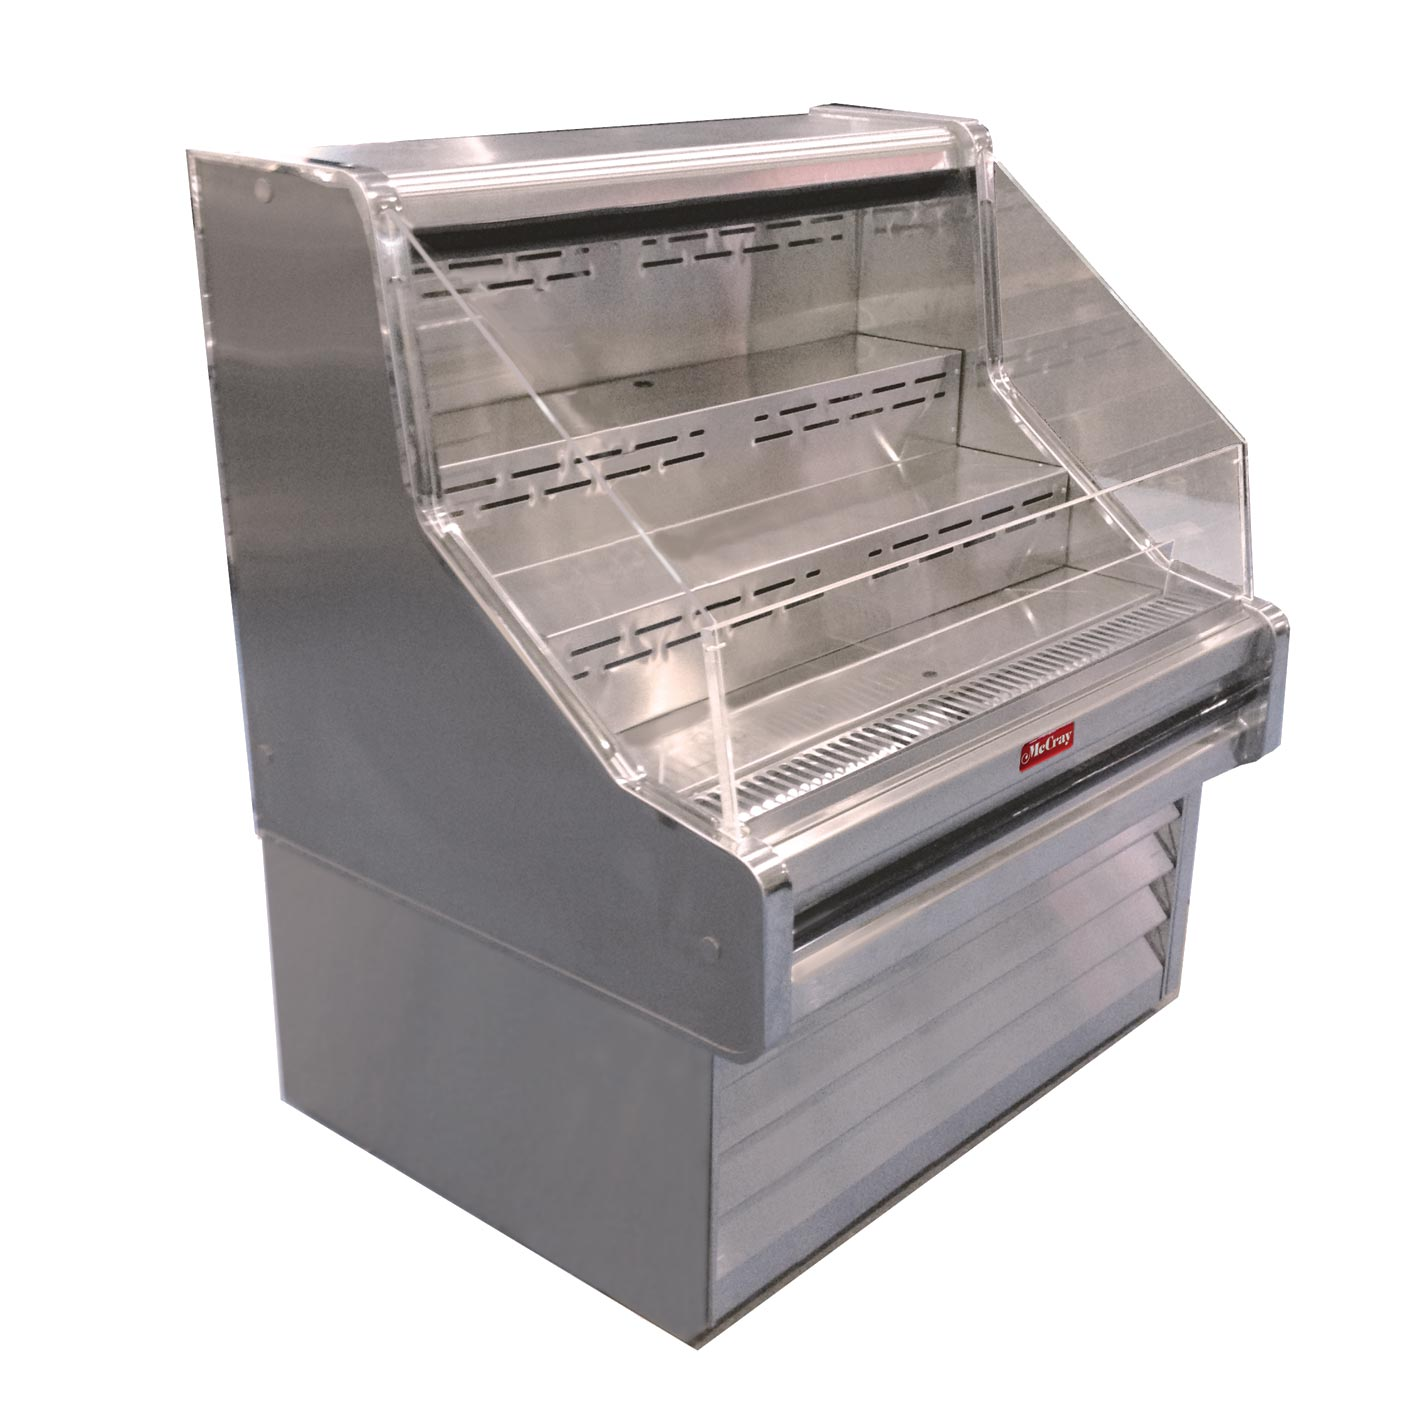 Howard-McCray R-OS35E-3-B merchandiser, open refrigerated display